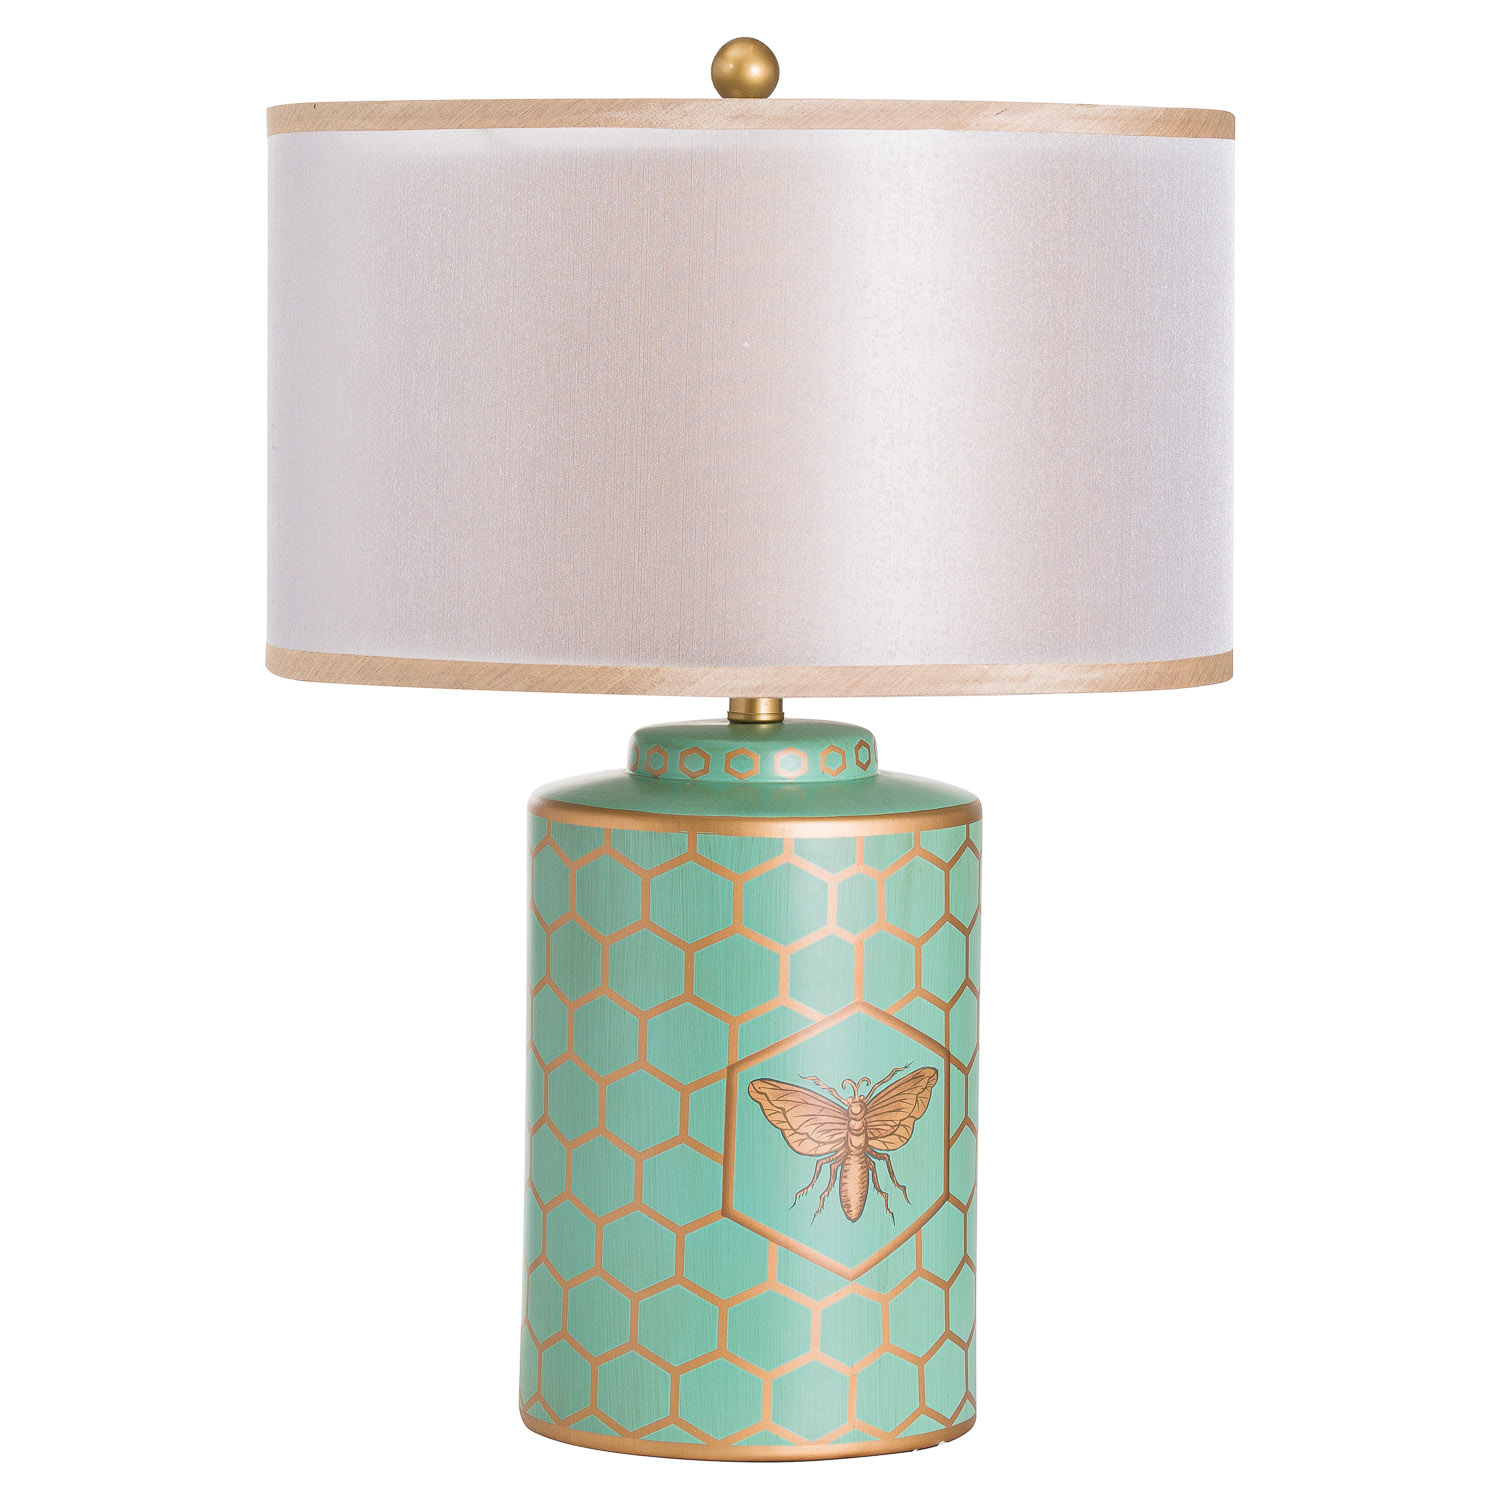 Harley Bee Table Lamp With White Shade